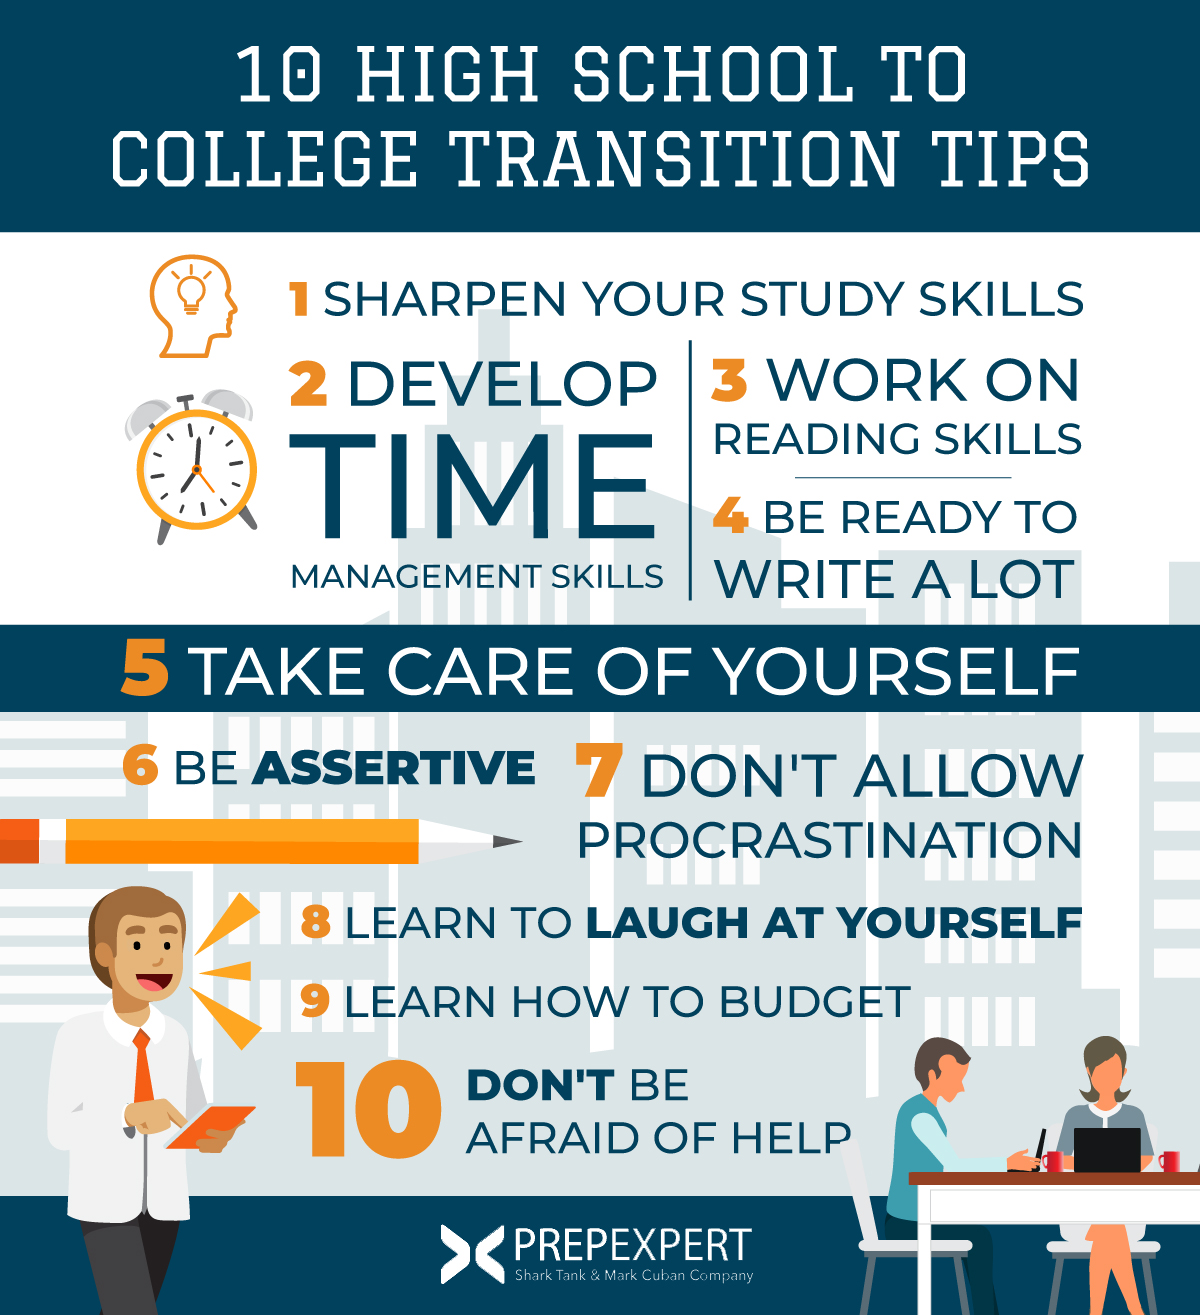 10 High School To College Transition Tips